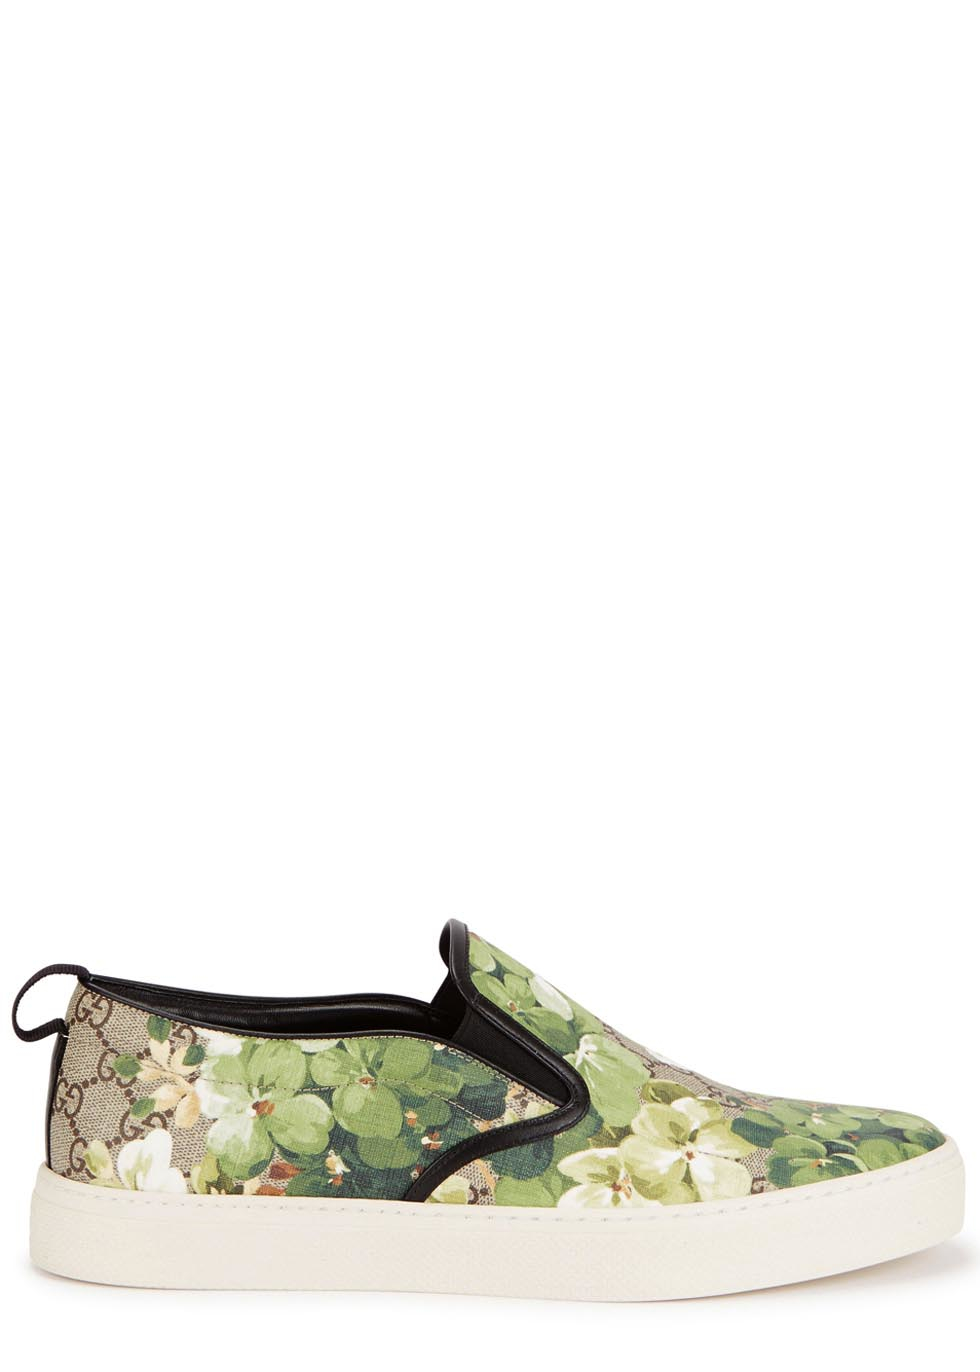 b6a293f5e Gucci Floral-print Skate Shoes for Men - Lyst